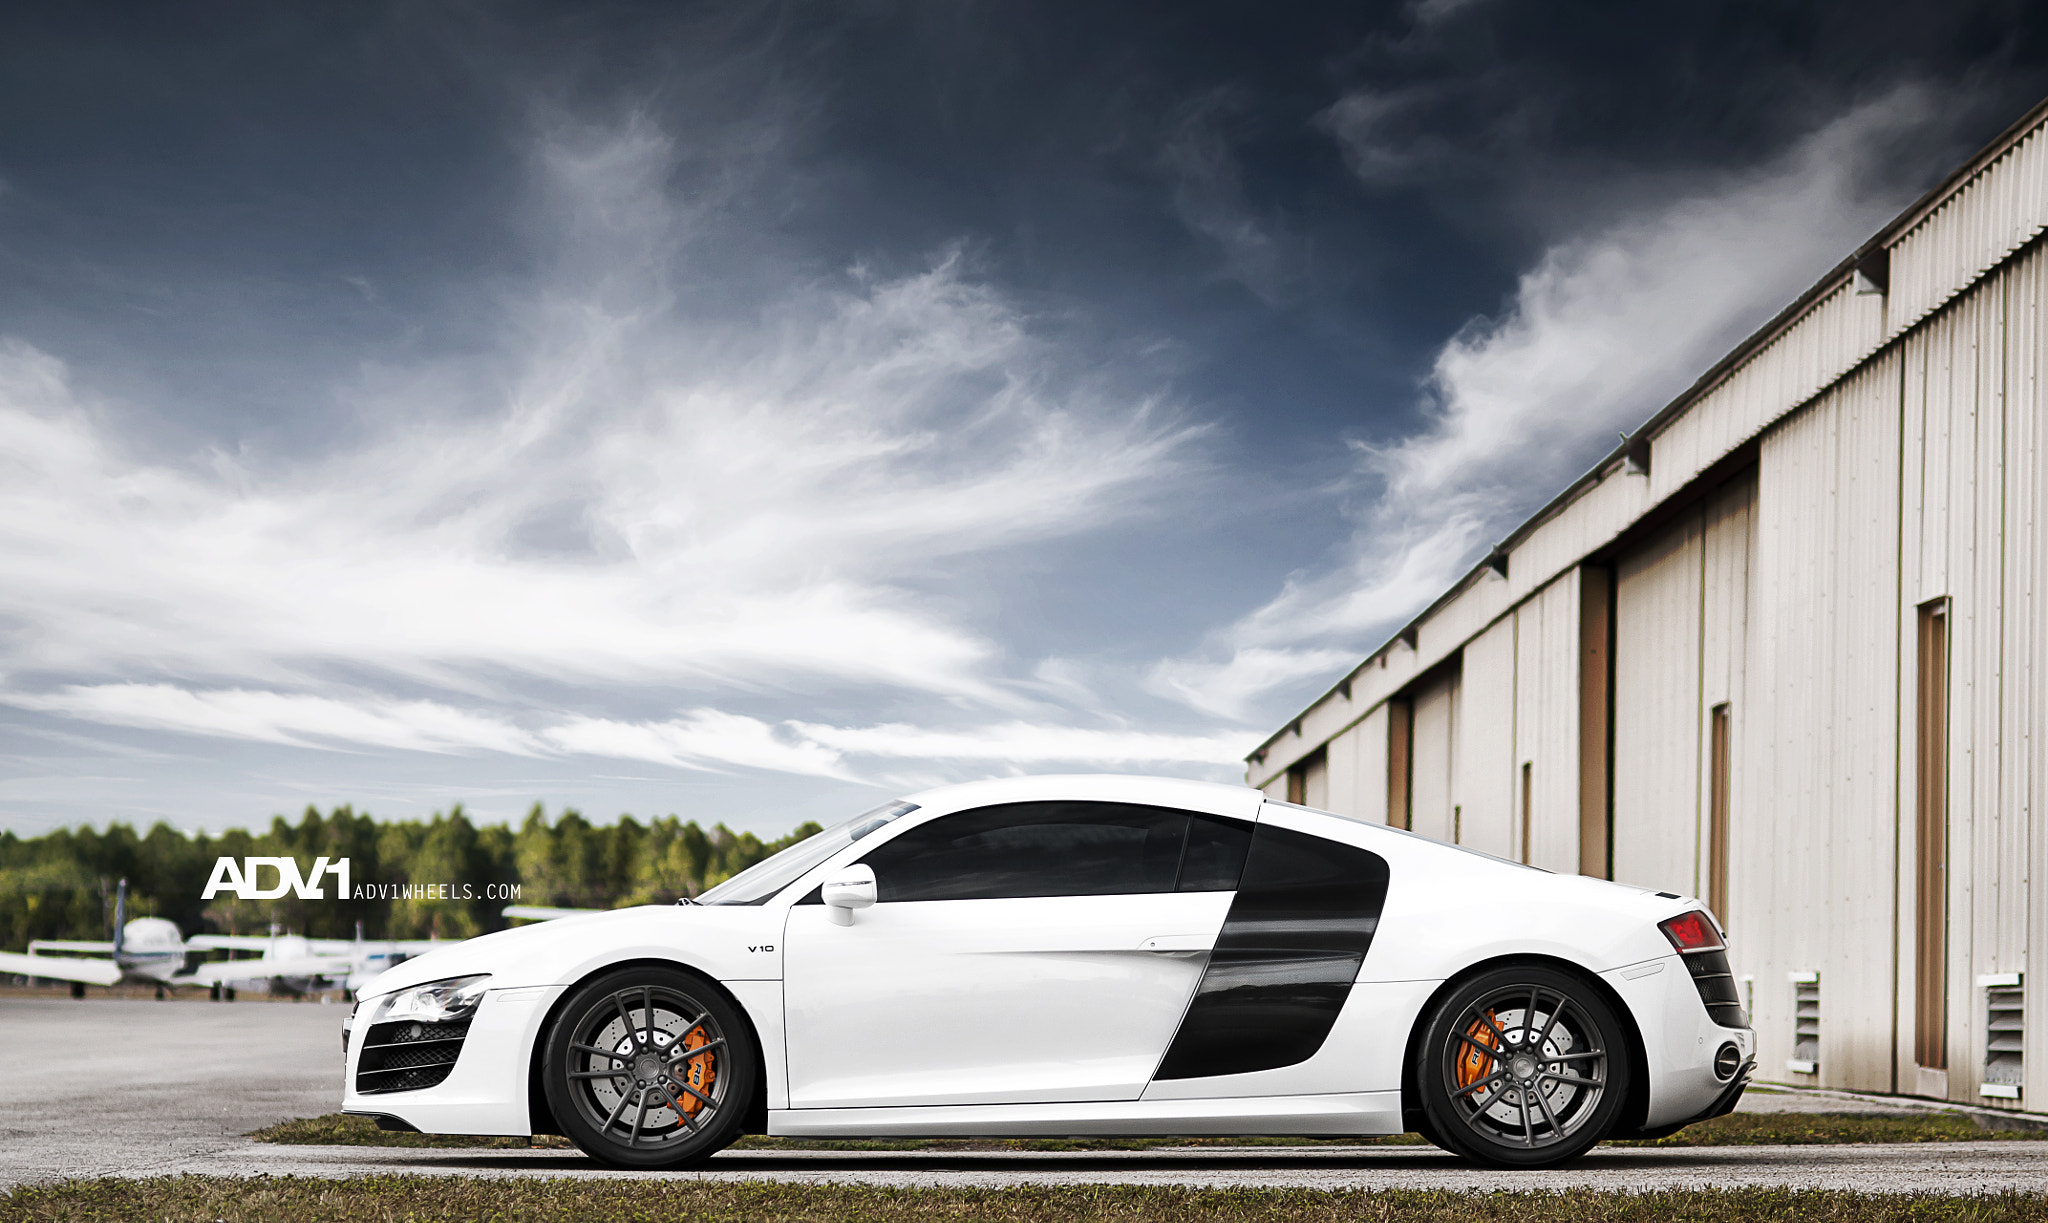 Photograph ADV.1 Audi R8 V10 by William Stern on 500px